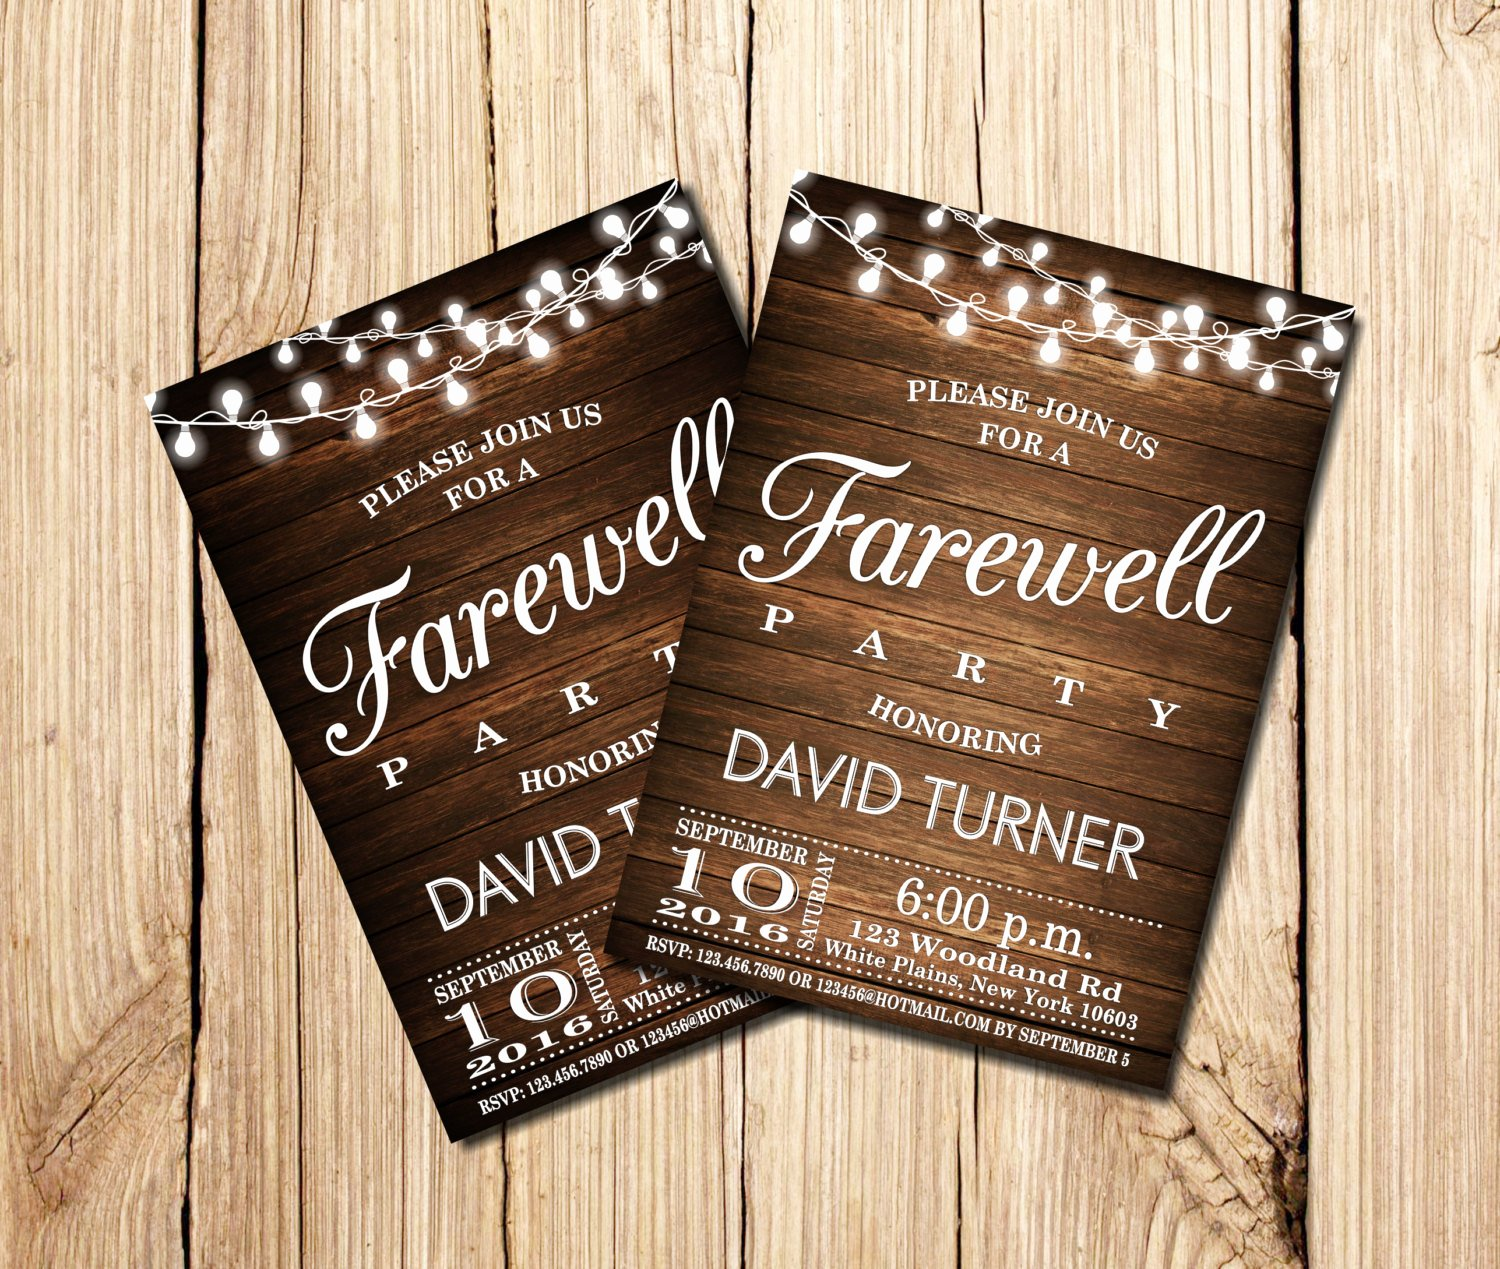 Farewell Invitation Template Free Best Of Farewell Party Invitation Farewell Invitation Rustic